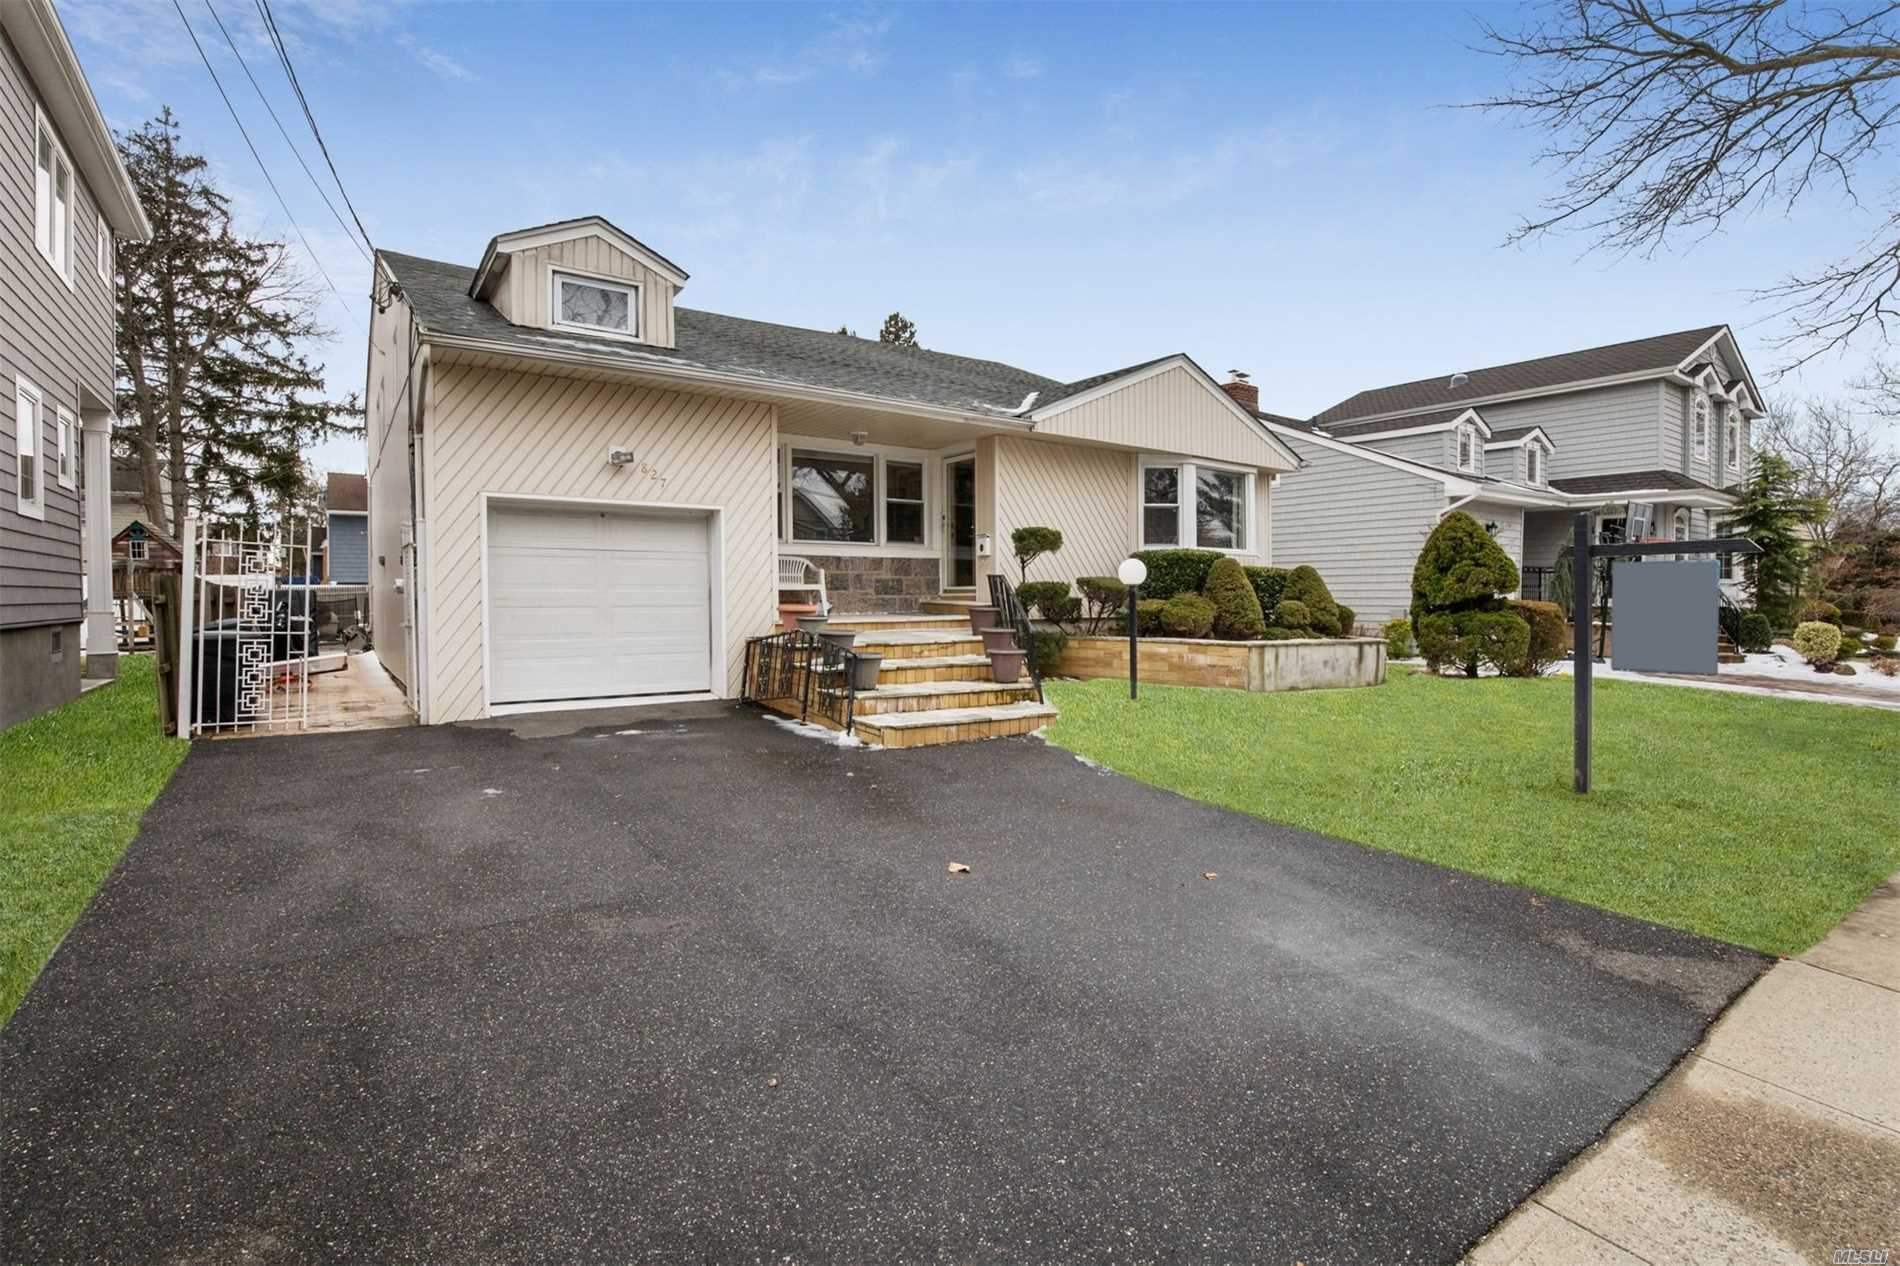 Spacious Split Located In The Heart Of Woodmere. Eat In Kitchen, Formal Dining Room Opens To Living Room. Den With Fireplace, Inground Gunite Pool, Swing Set, Master Bedroom With Full Bath And Walk In Closet, Hardwood Floors Upstairs, Cac, 3 Zone Heat With Separate Hot Water Heater. Close To Houses Of Worship.